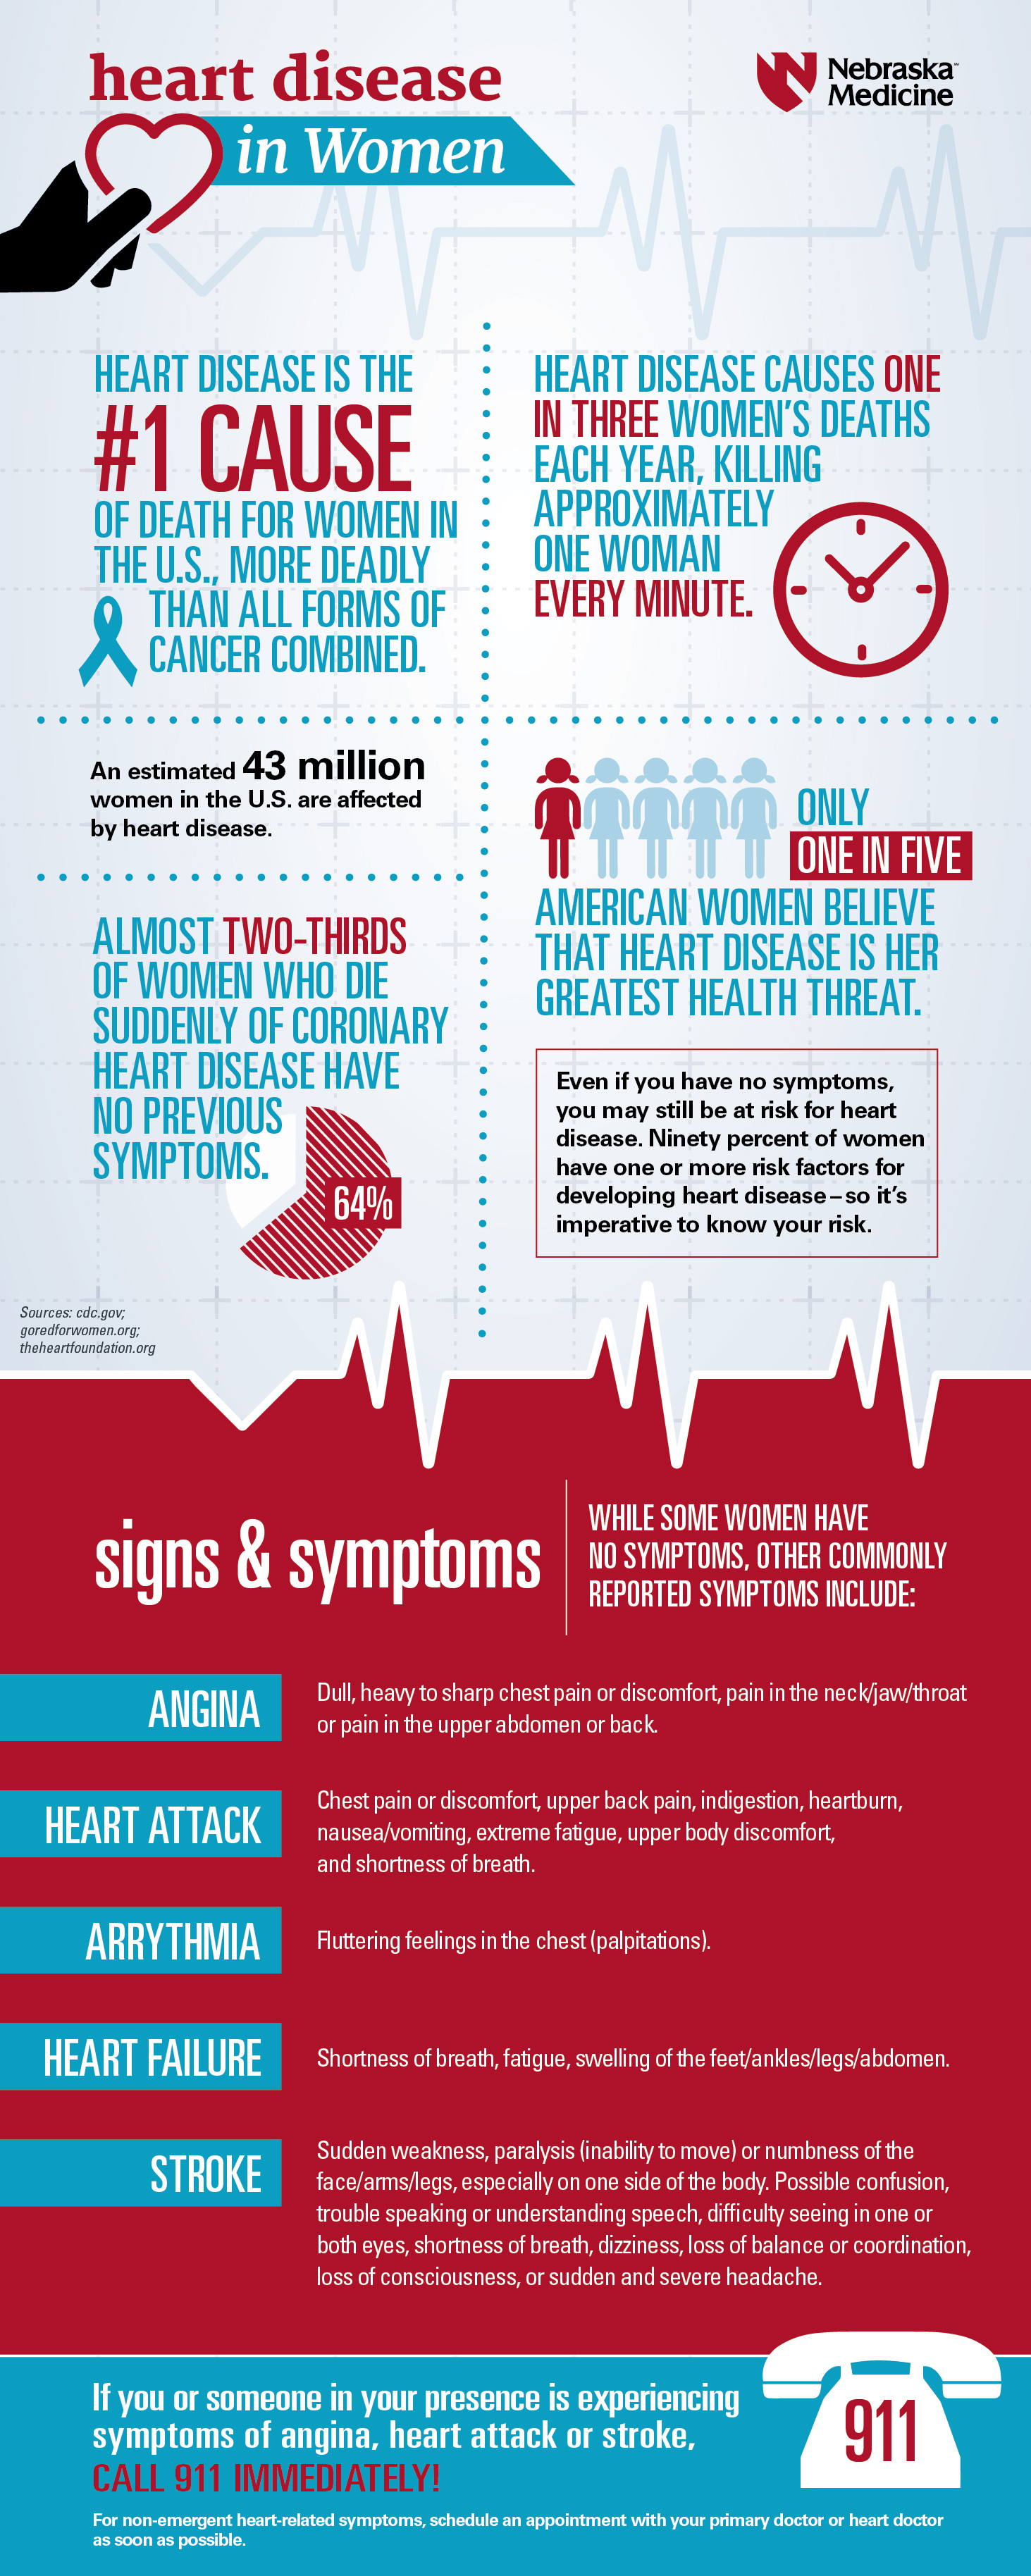 Ladies, Know Your Heart Attack Symptoms and Take Action | Nebraska